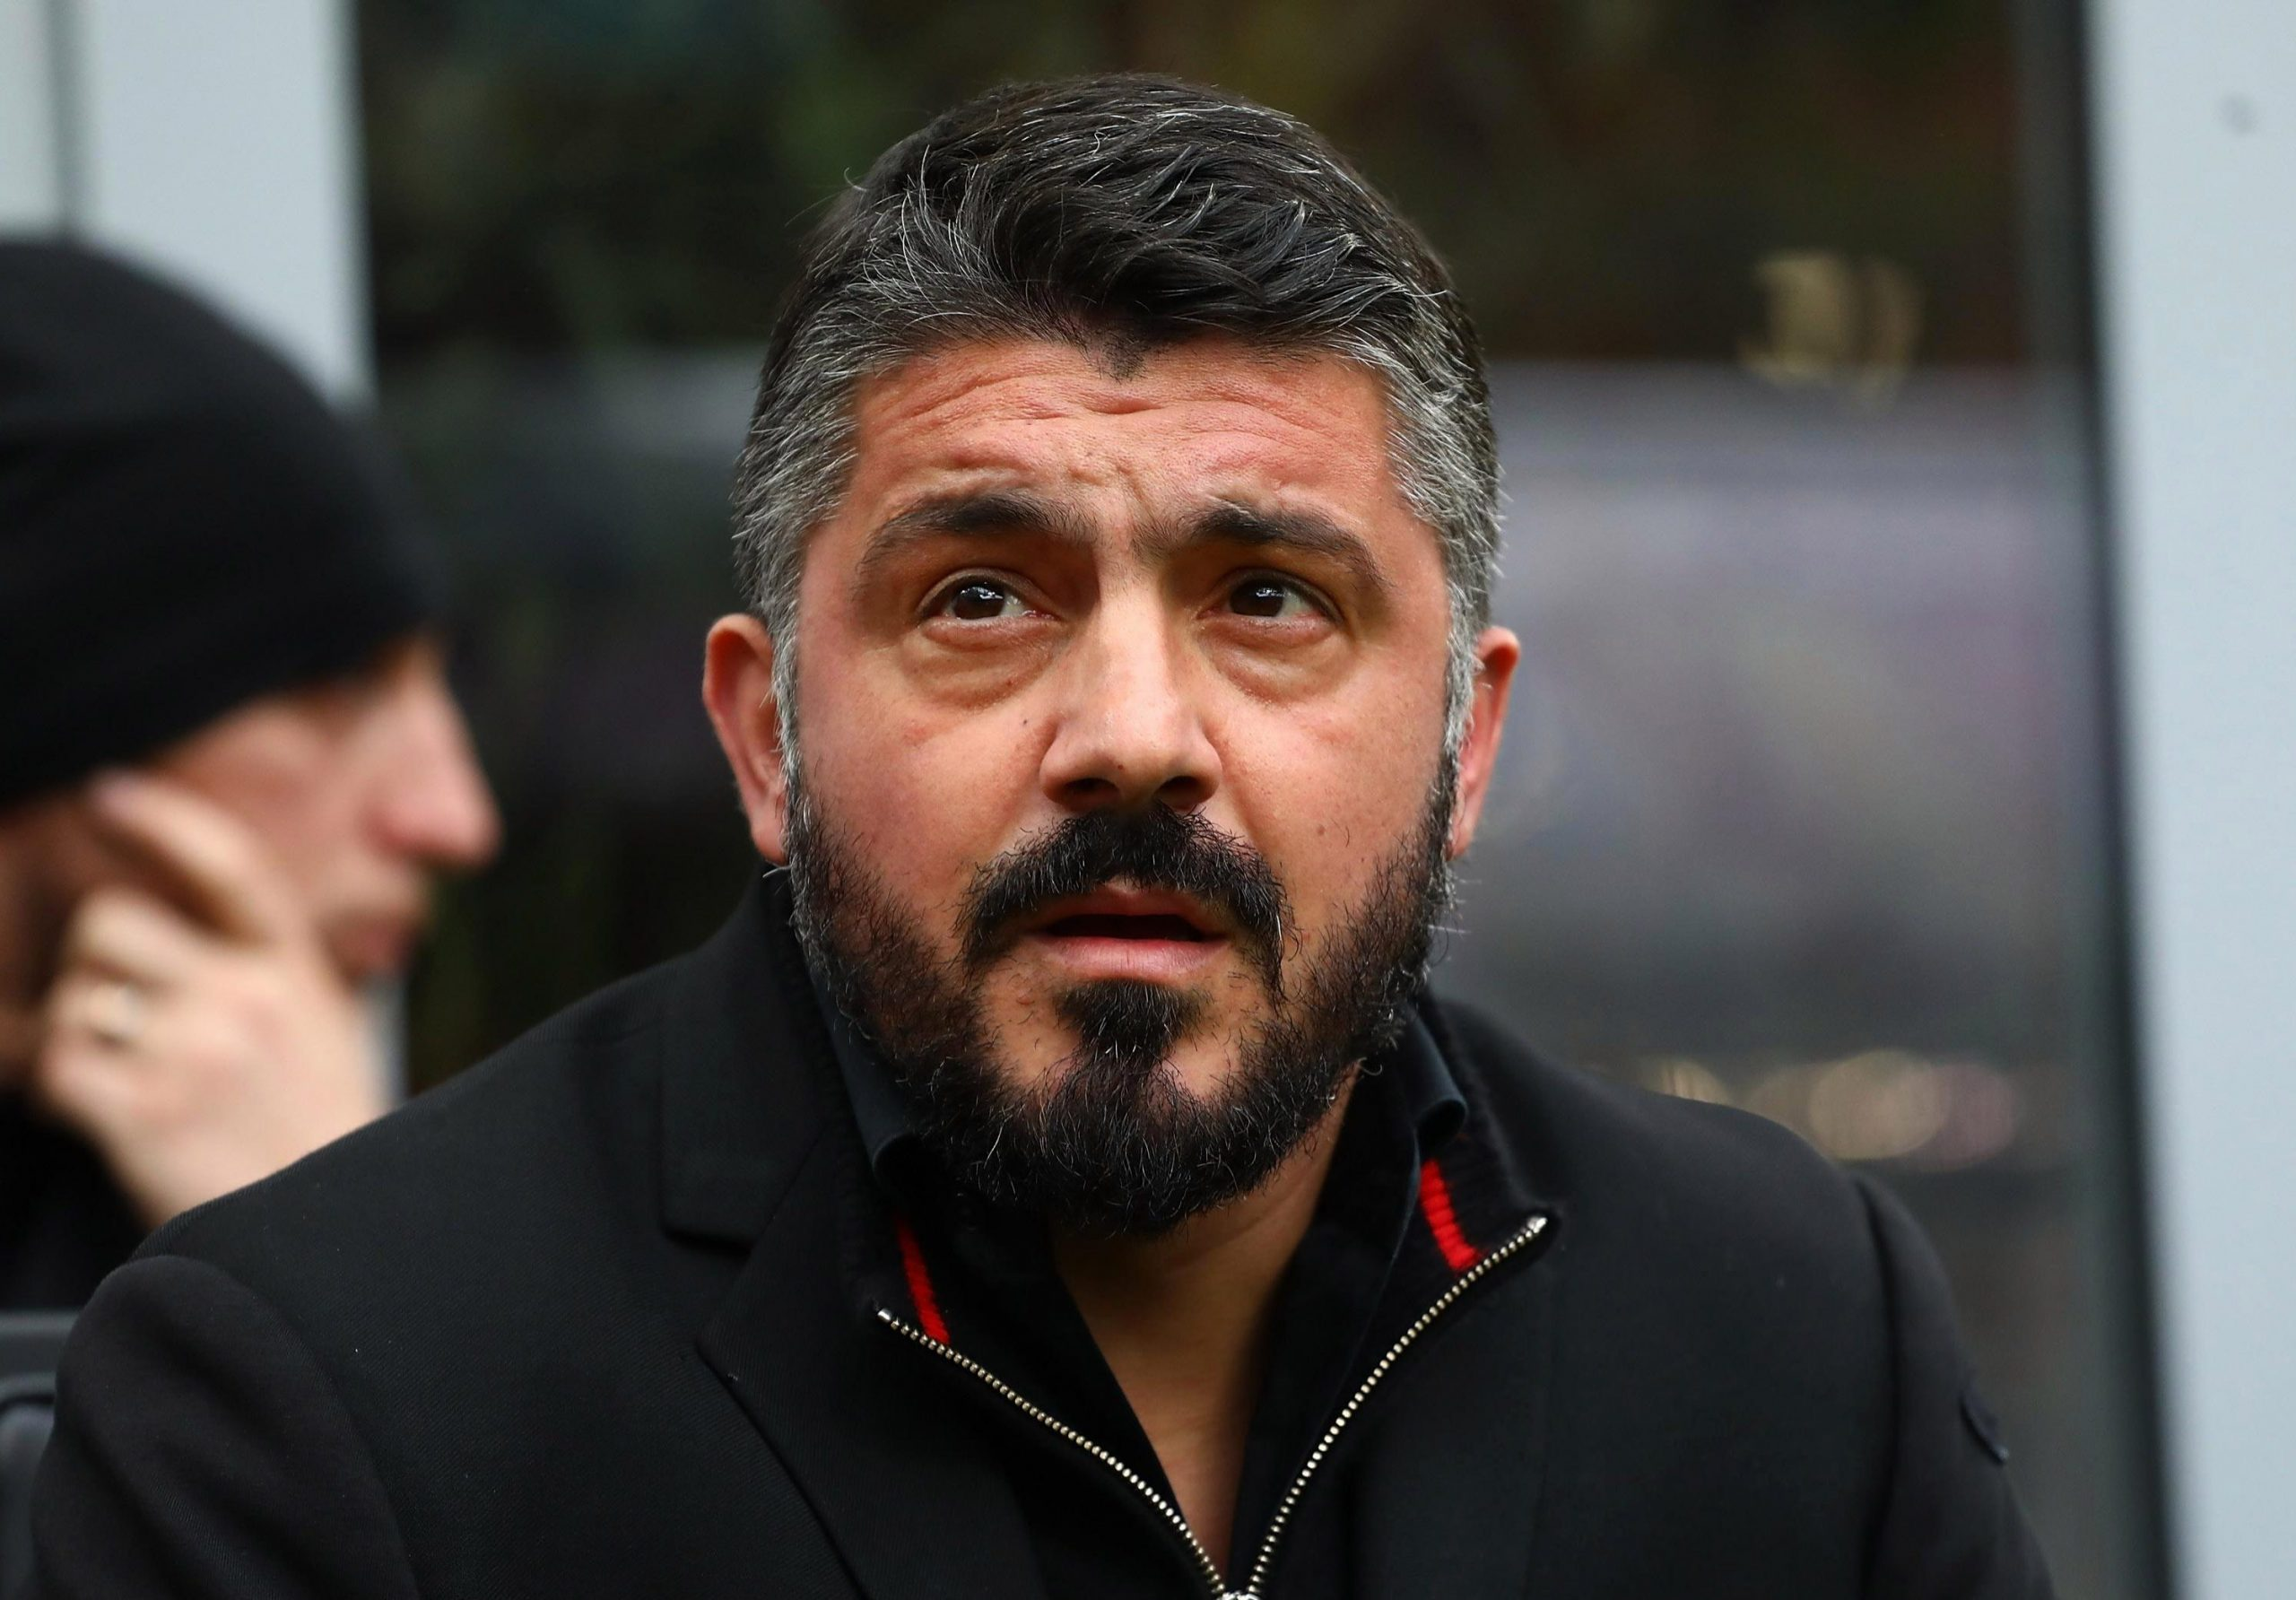 Gattuso 'reaches agreement with Napoli